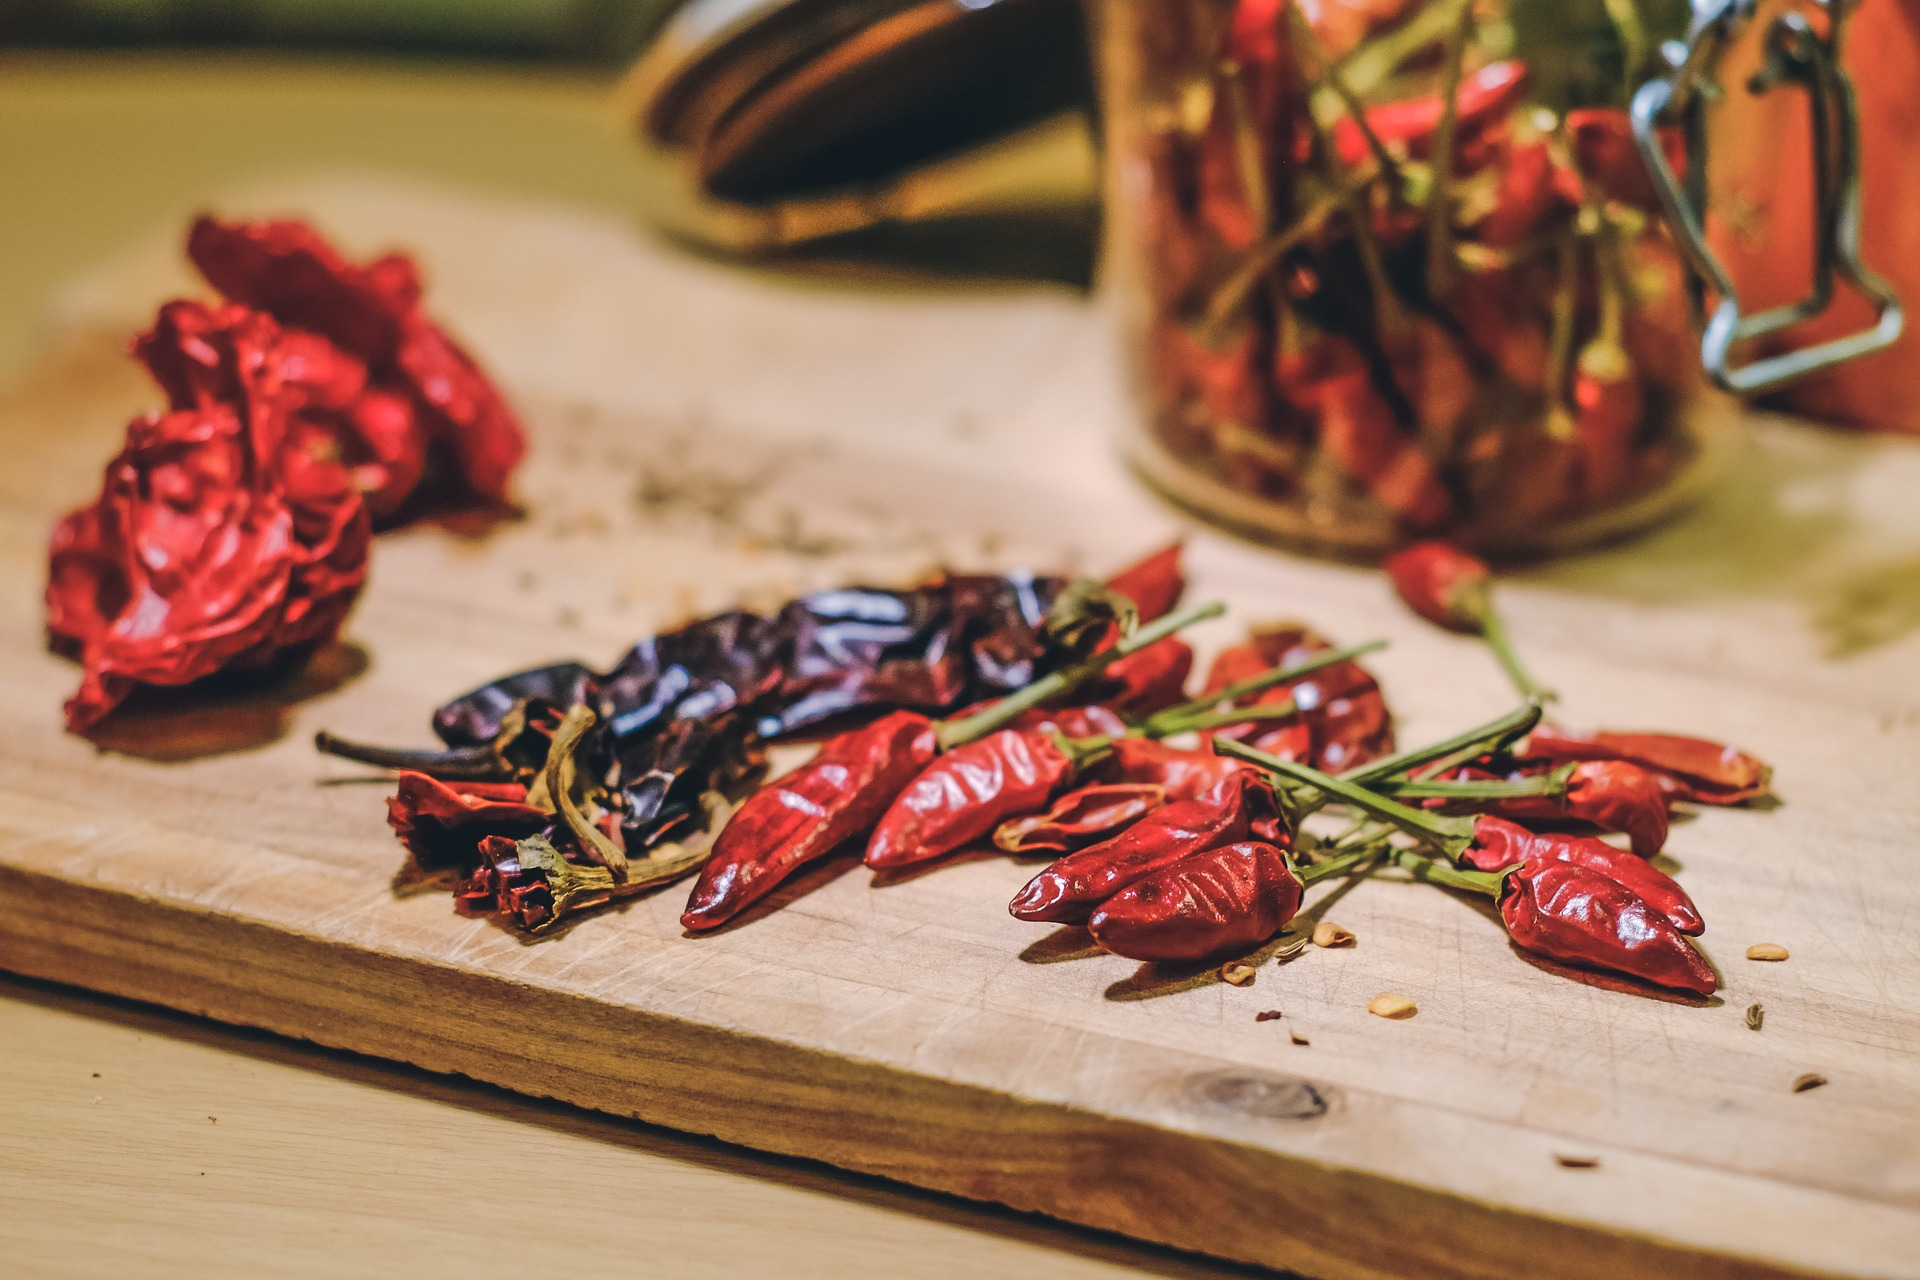 Chili Peppers are a natural anti-inflammatory food